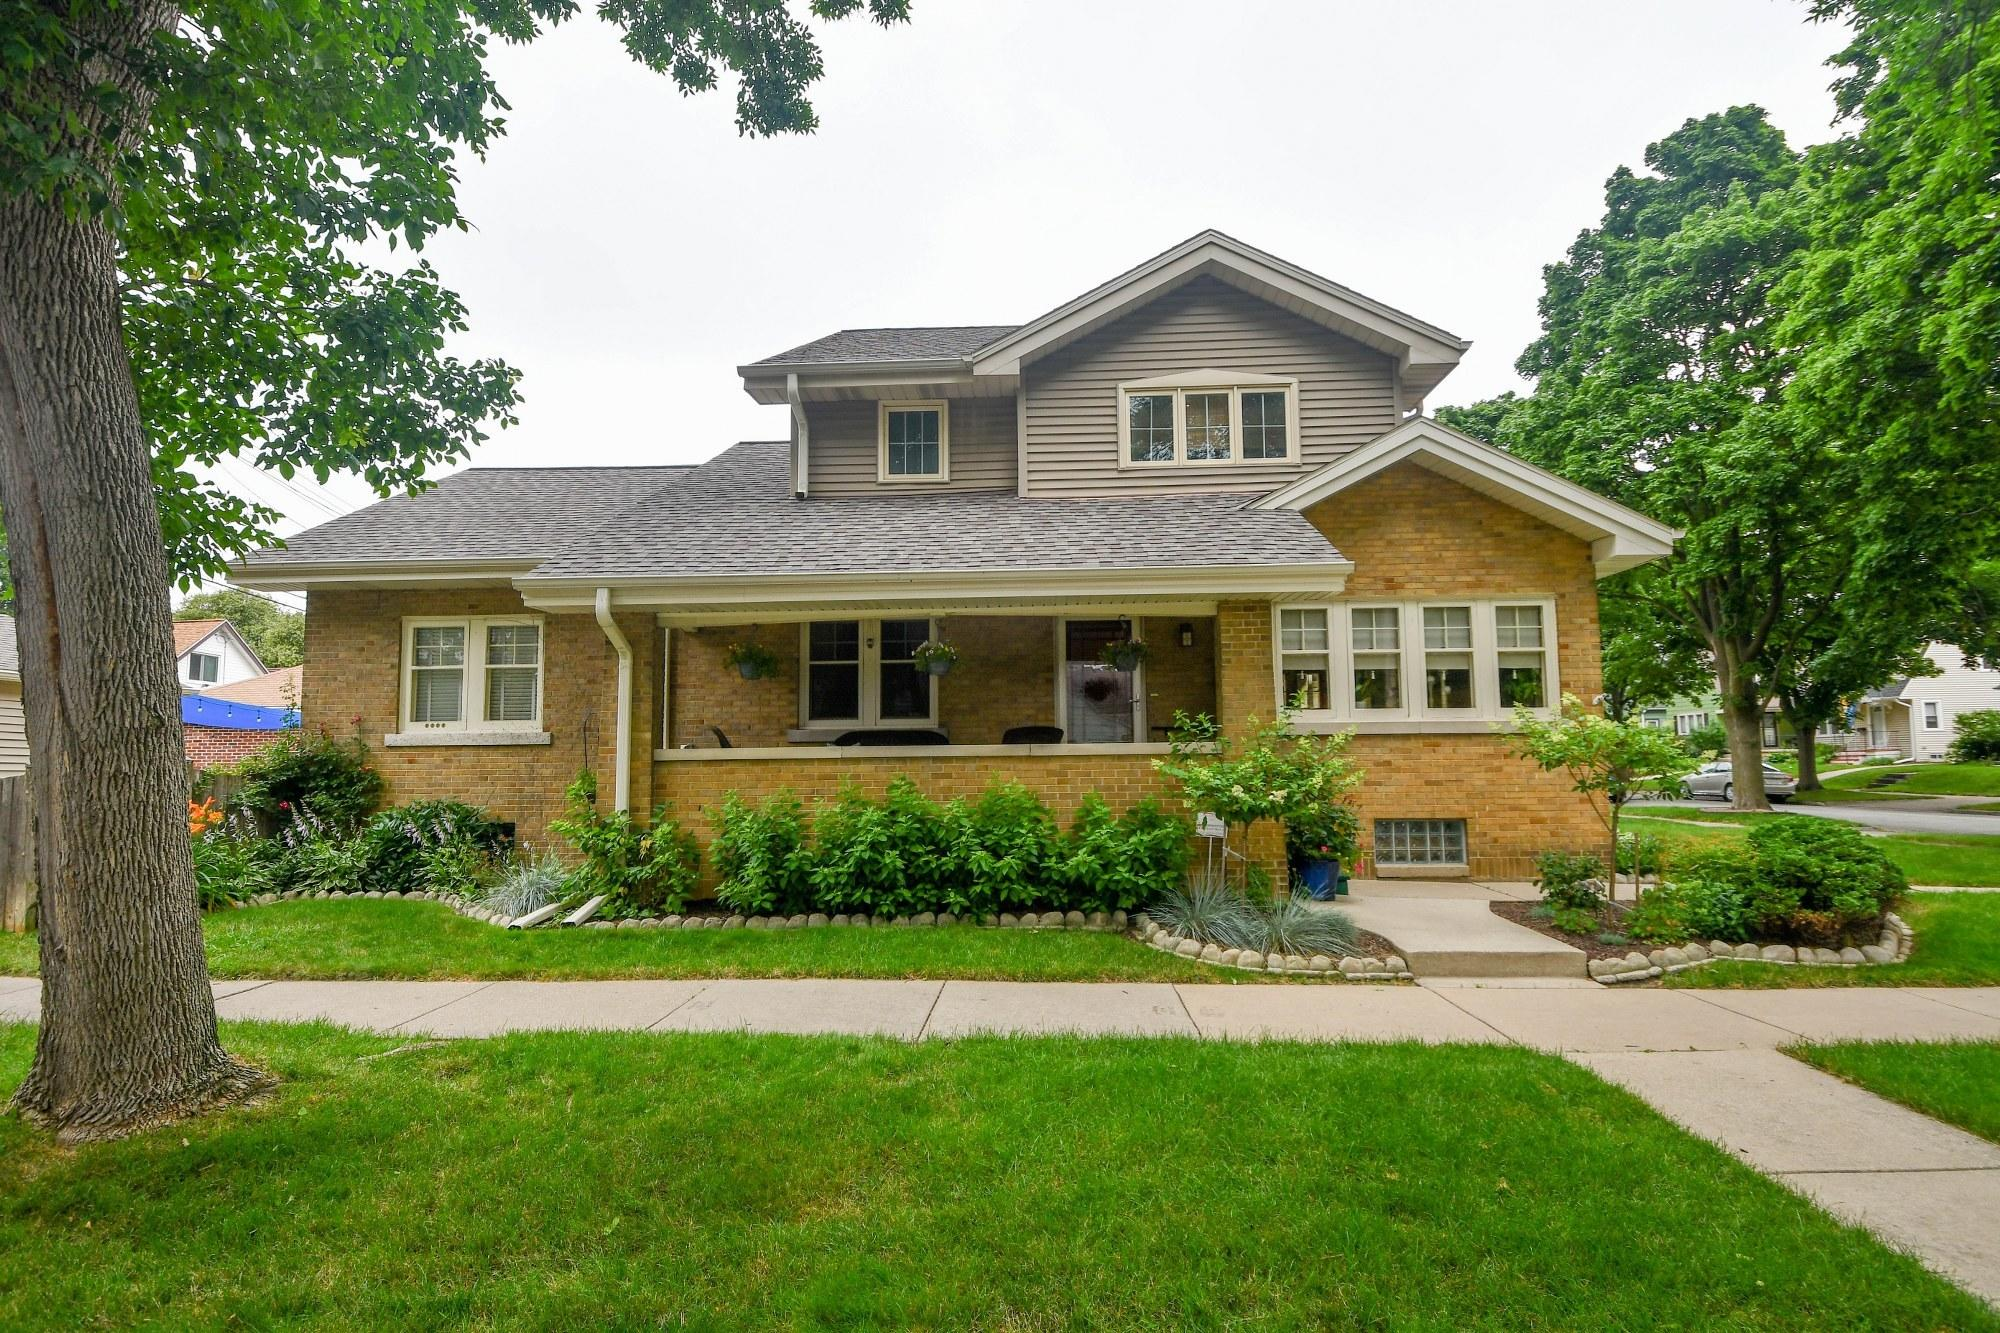 2401 70th St, Wauwatosa, Wisconsin 53213, 4 Bedrooms Bedrooms, 9 Rooms Rooms,2 BathroomsBathrooms,Single-Family,For Sale,70th St,1751435